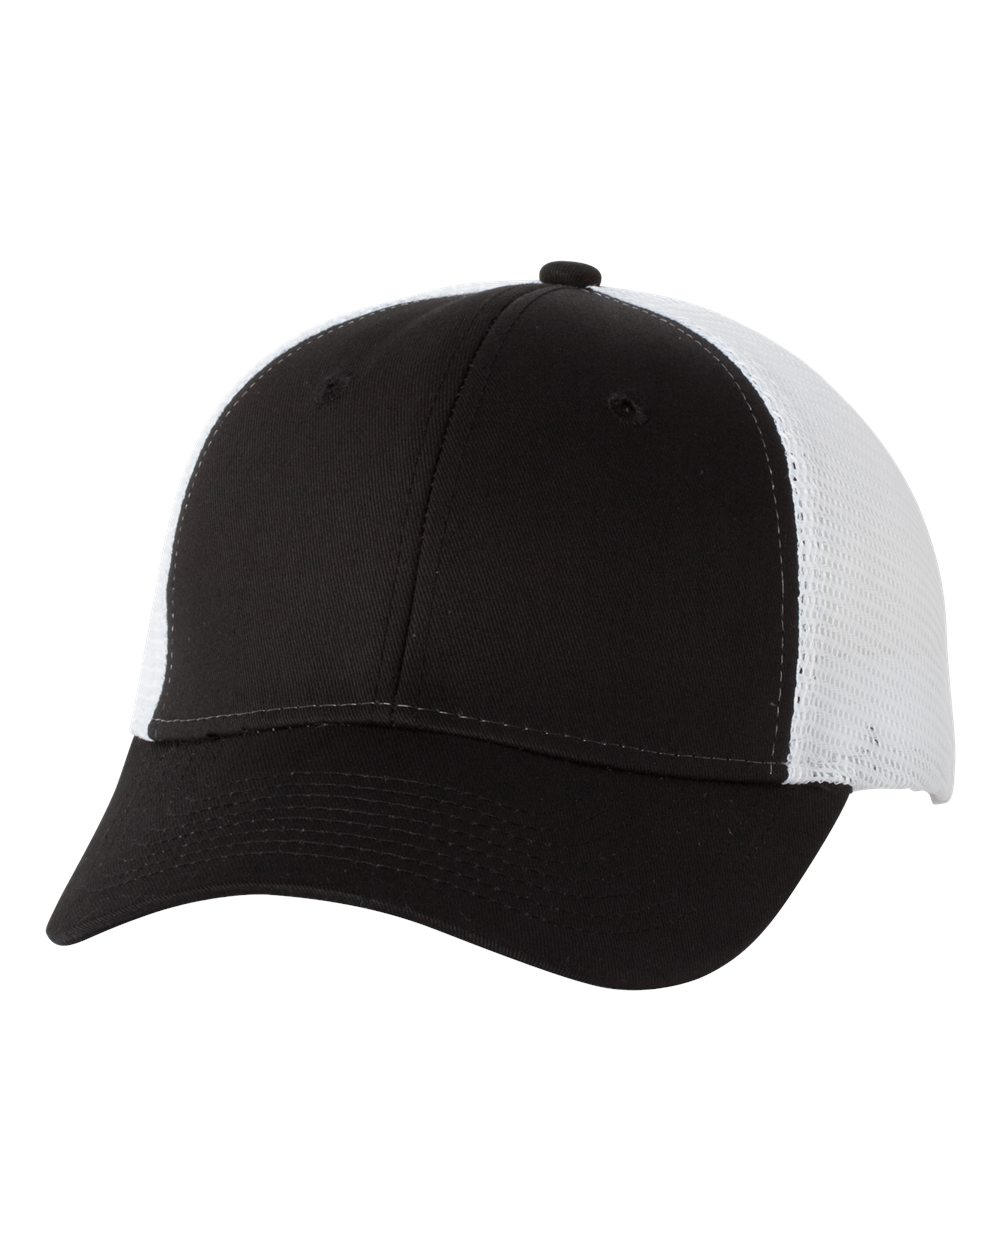 Valucap Twill Trucker Cap- reliable promotional products by ... ddeb5edffdf